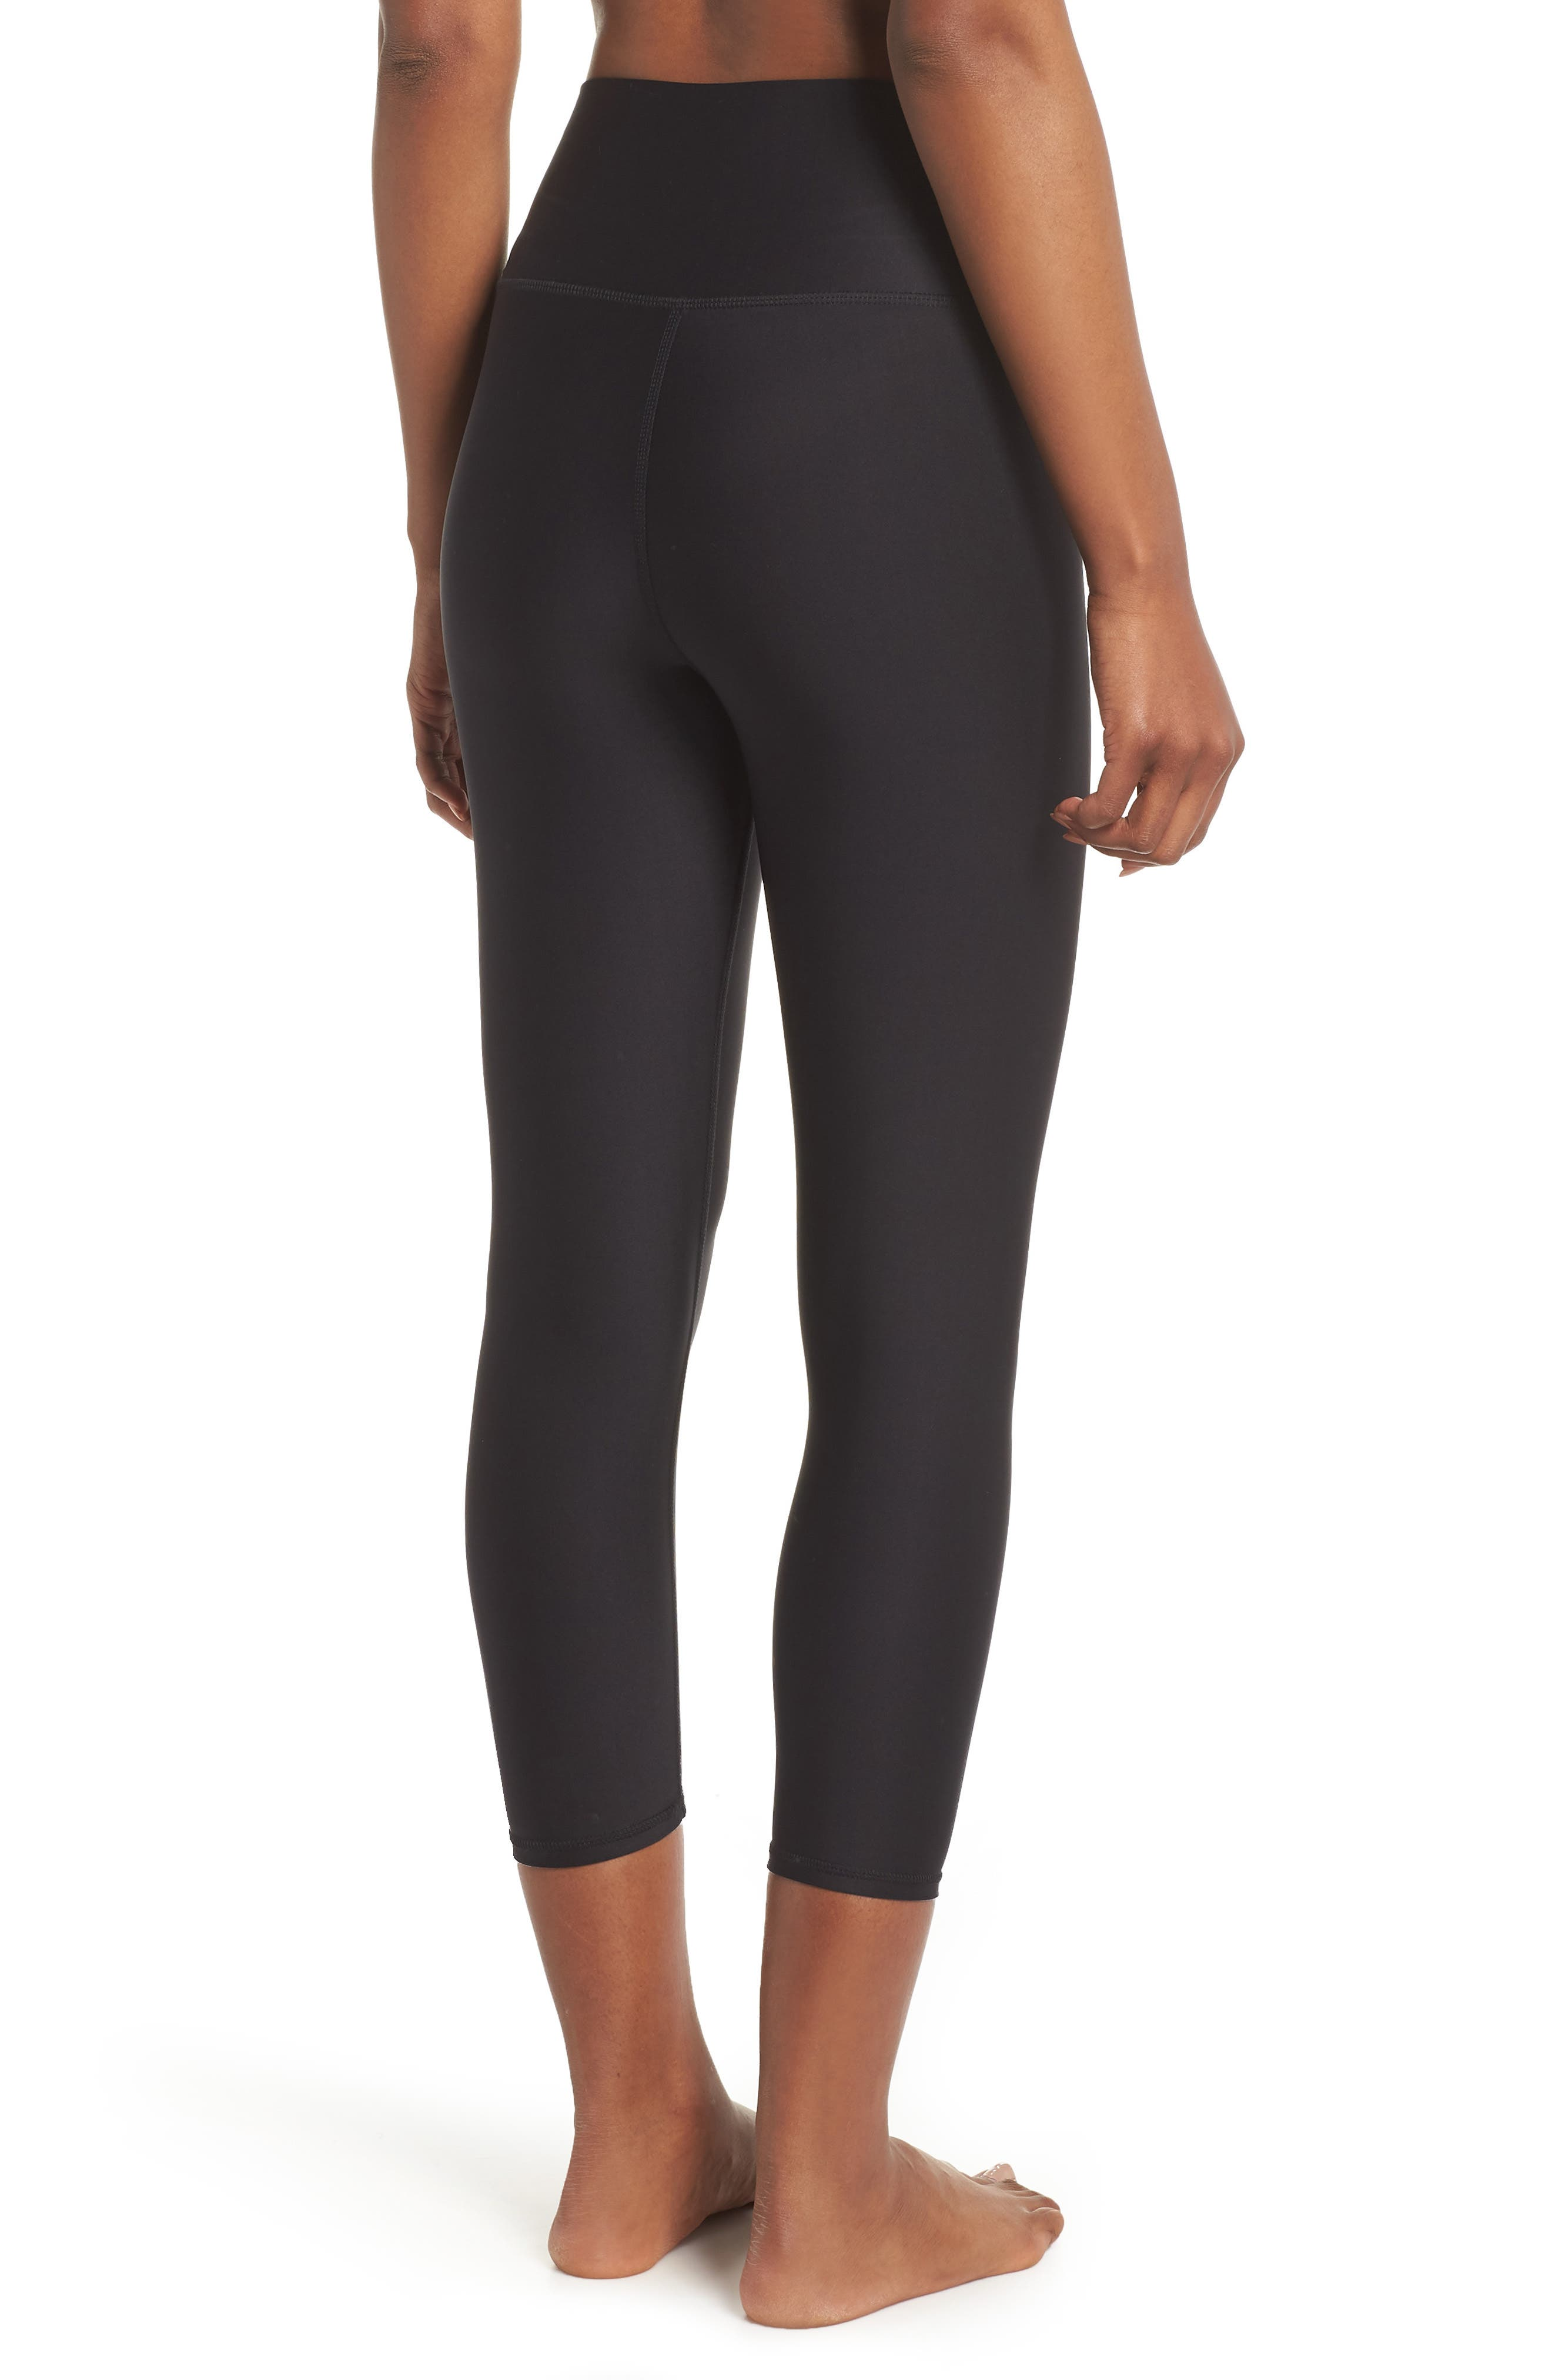 baace1f35027b Women's Leggings New Arrivals: Clothing, Shoes & Beauty | Nordstrom